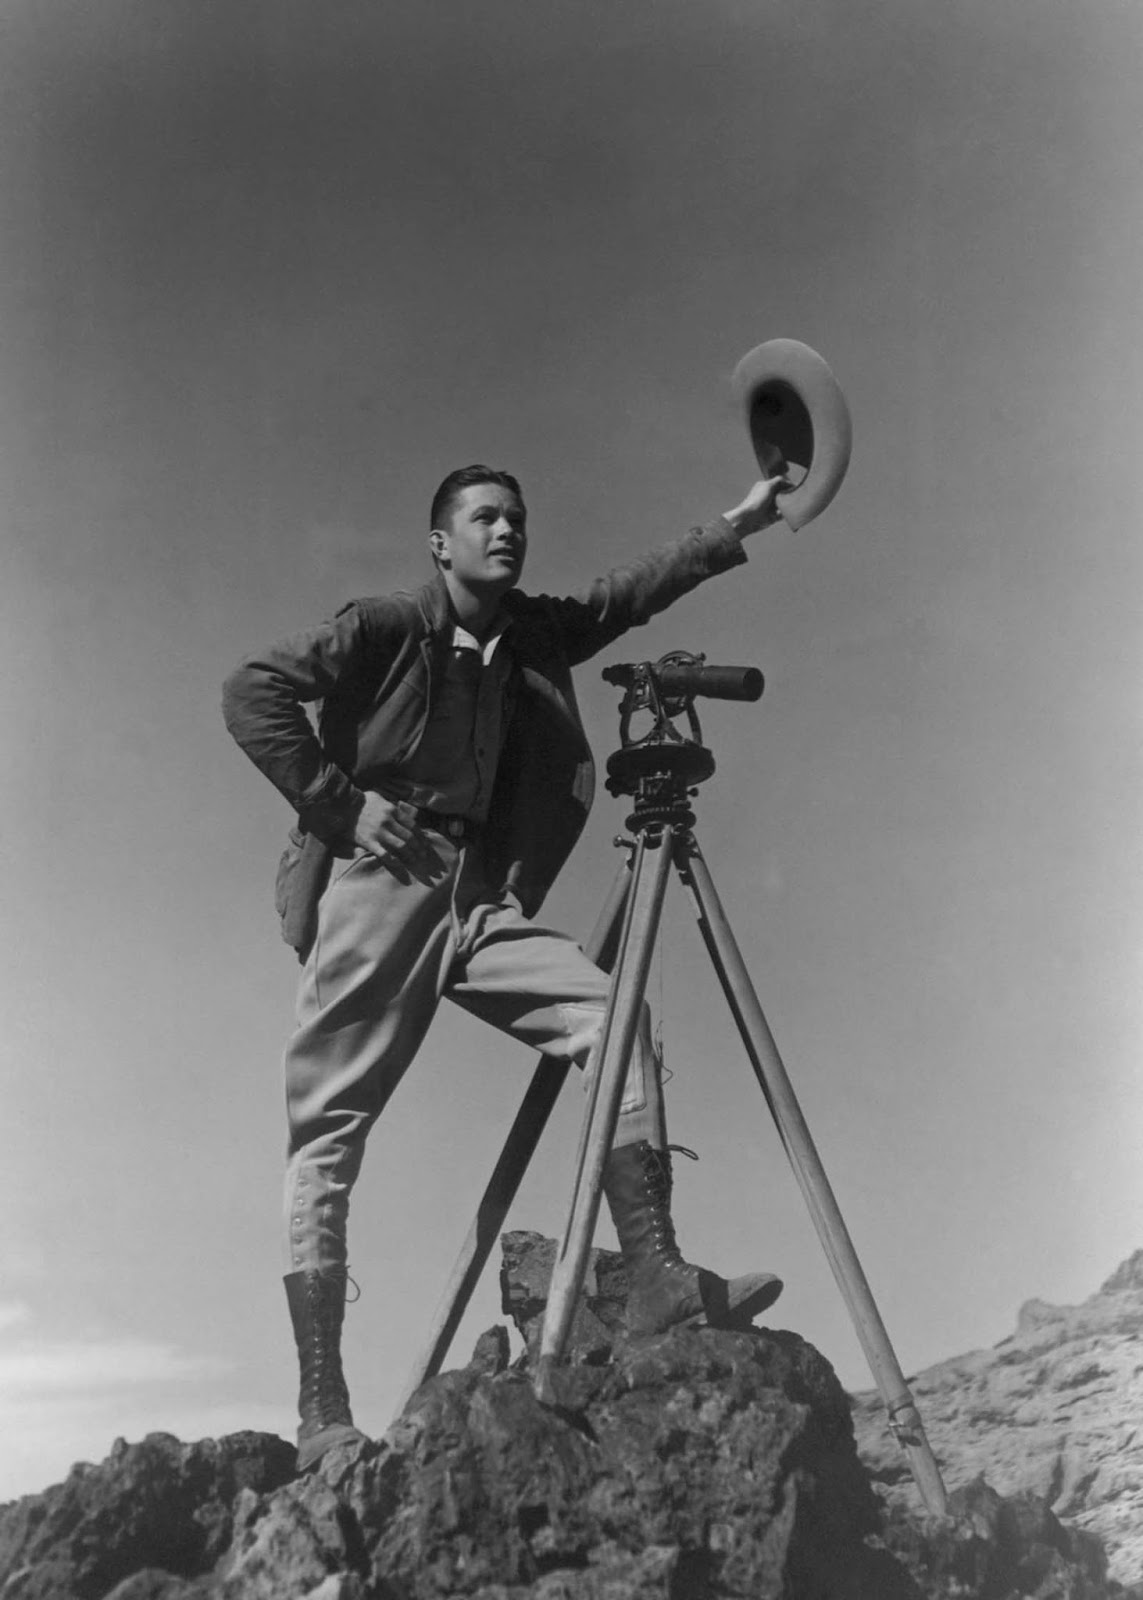 A surveyor signals to colleagues during the construction of the dam. 1932.